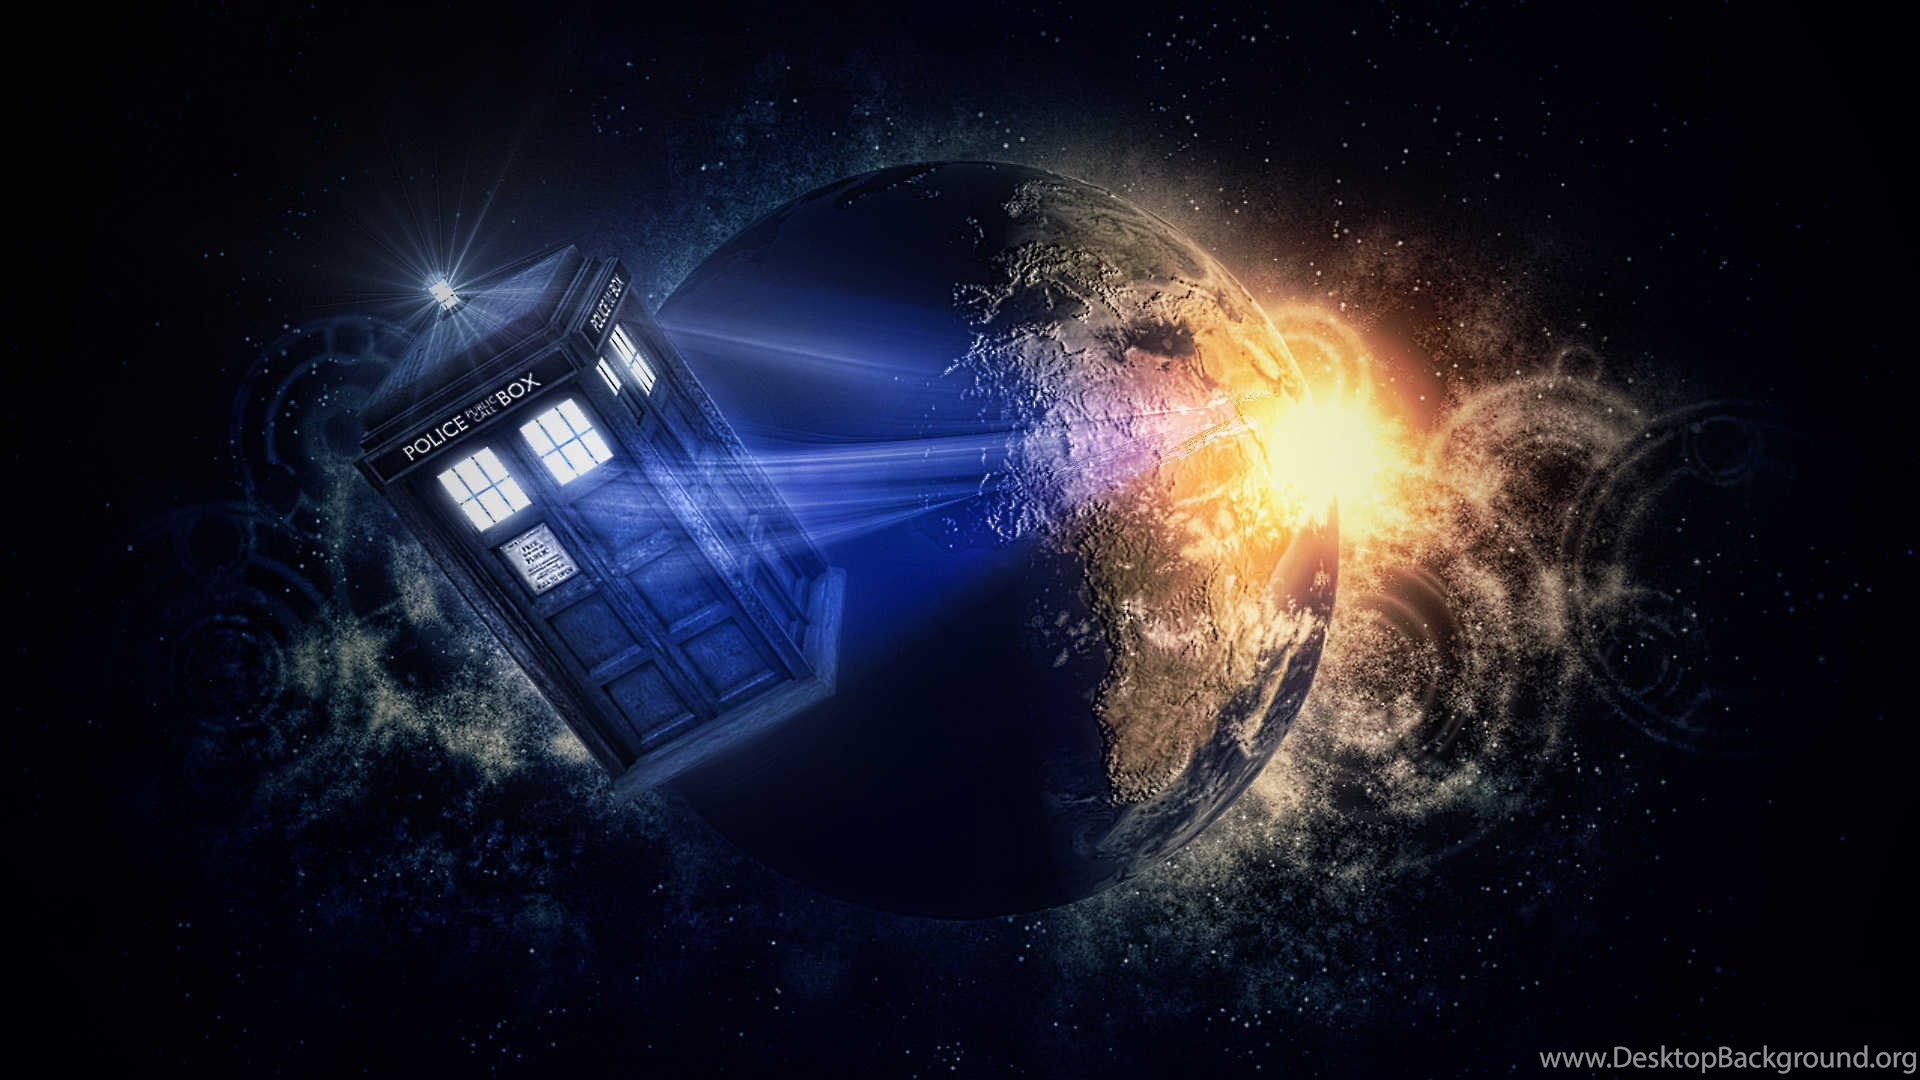 New doctor who 1080p backgrounds 1920x1080 desktop - Dr who wallpaper ...